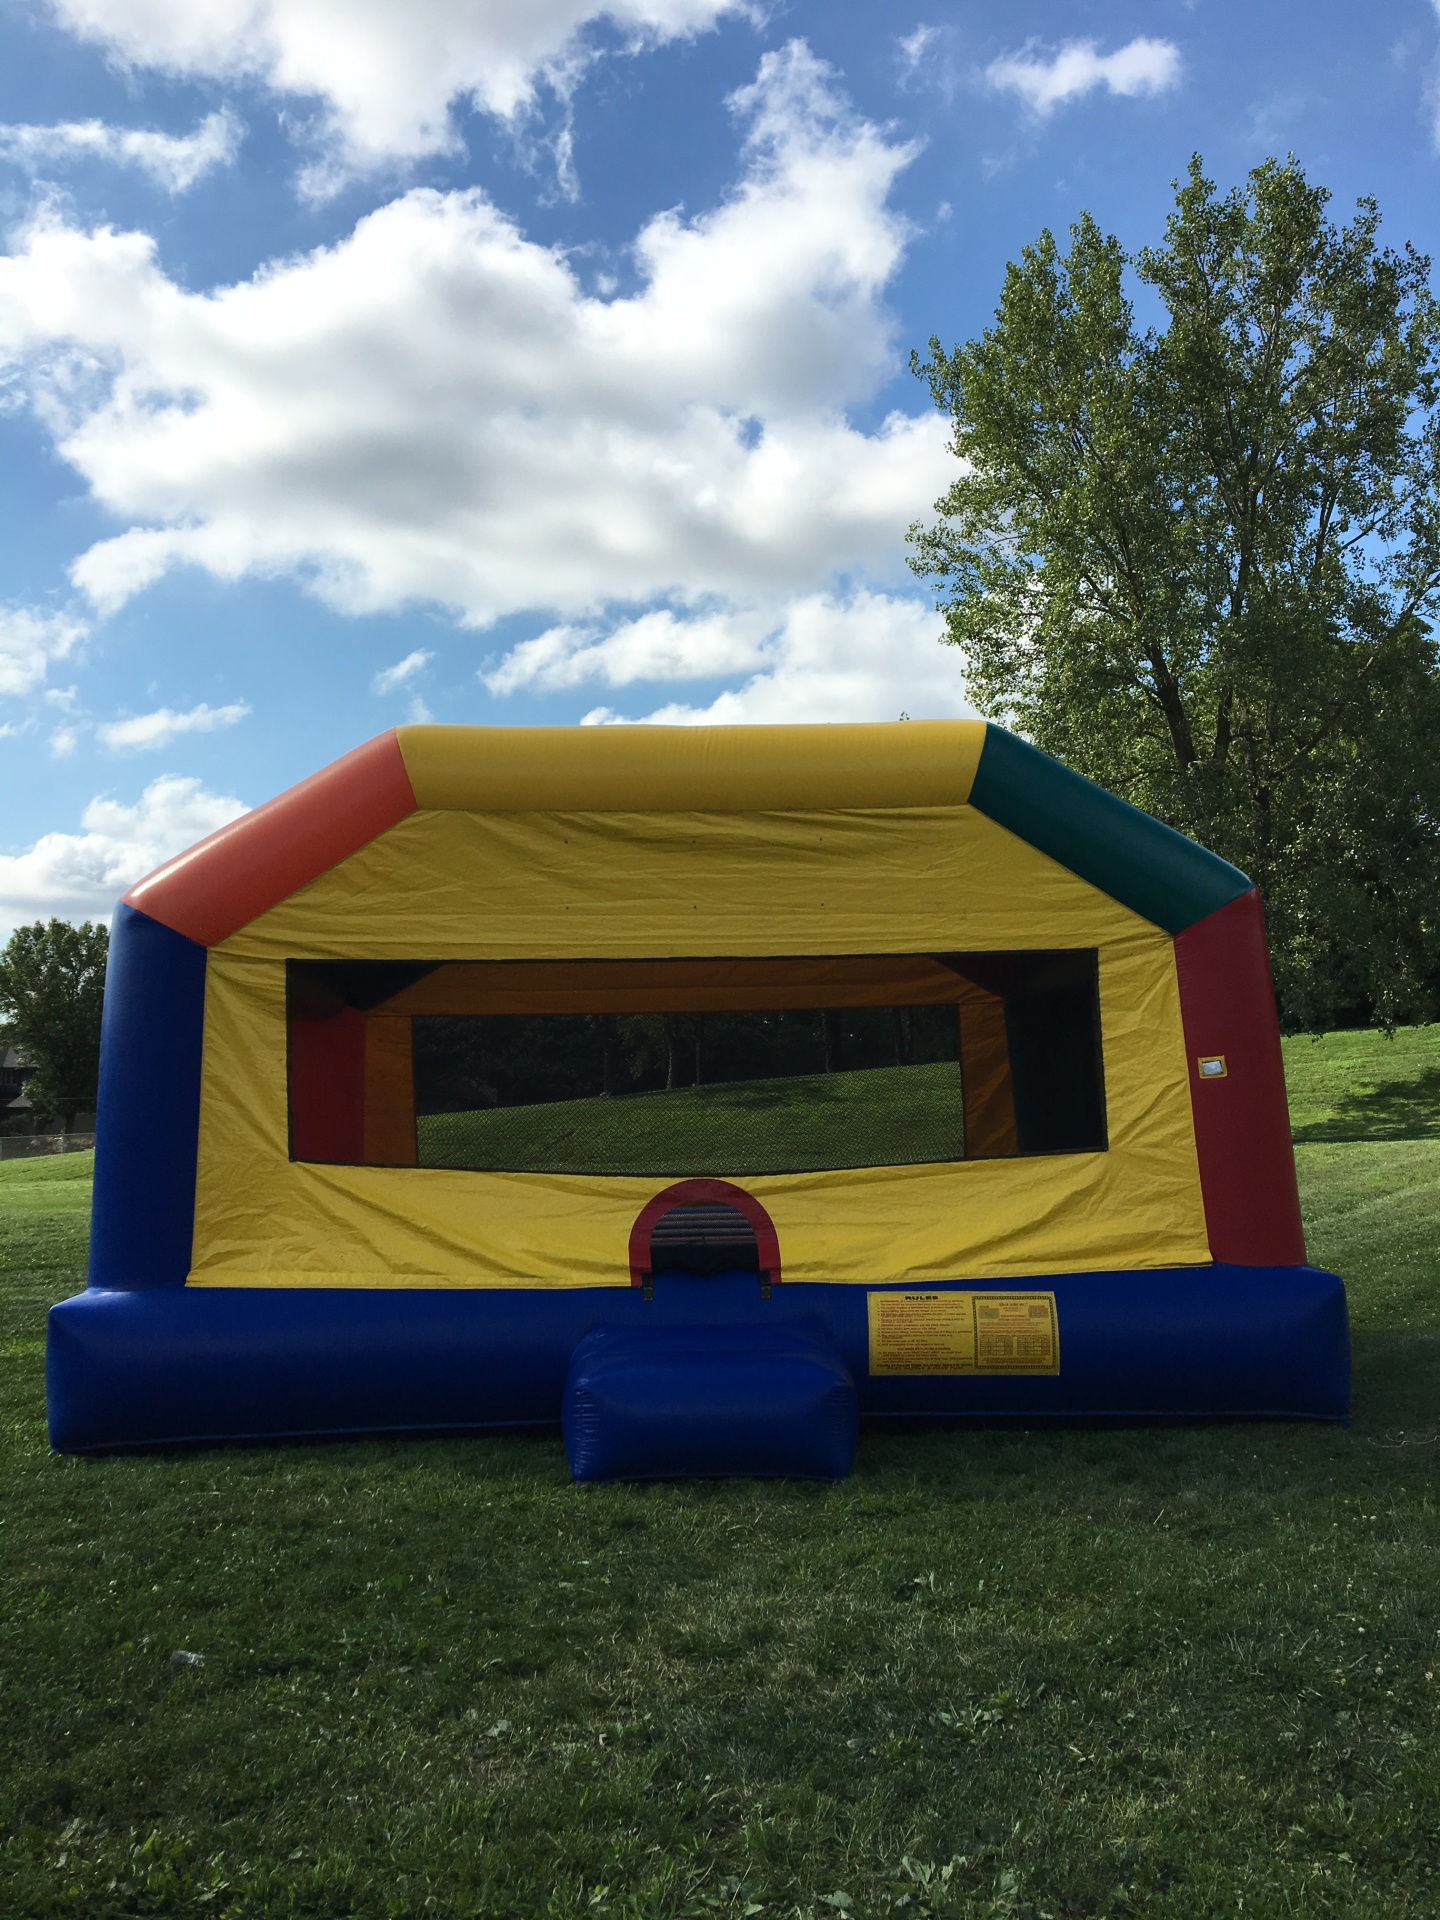 XL Bounce house $250